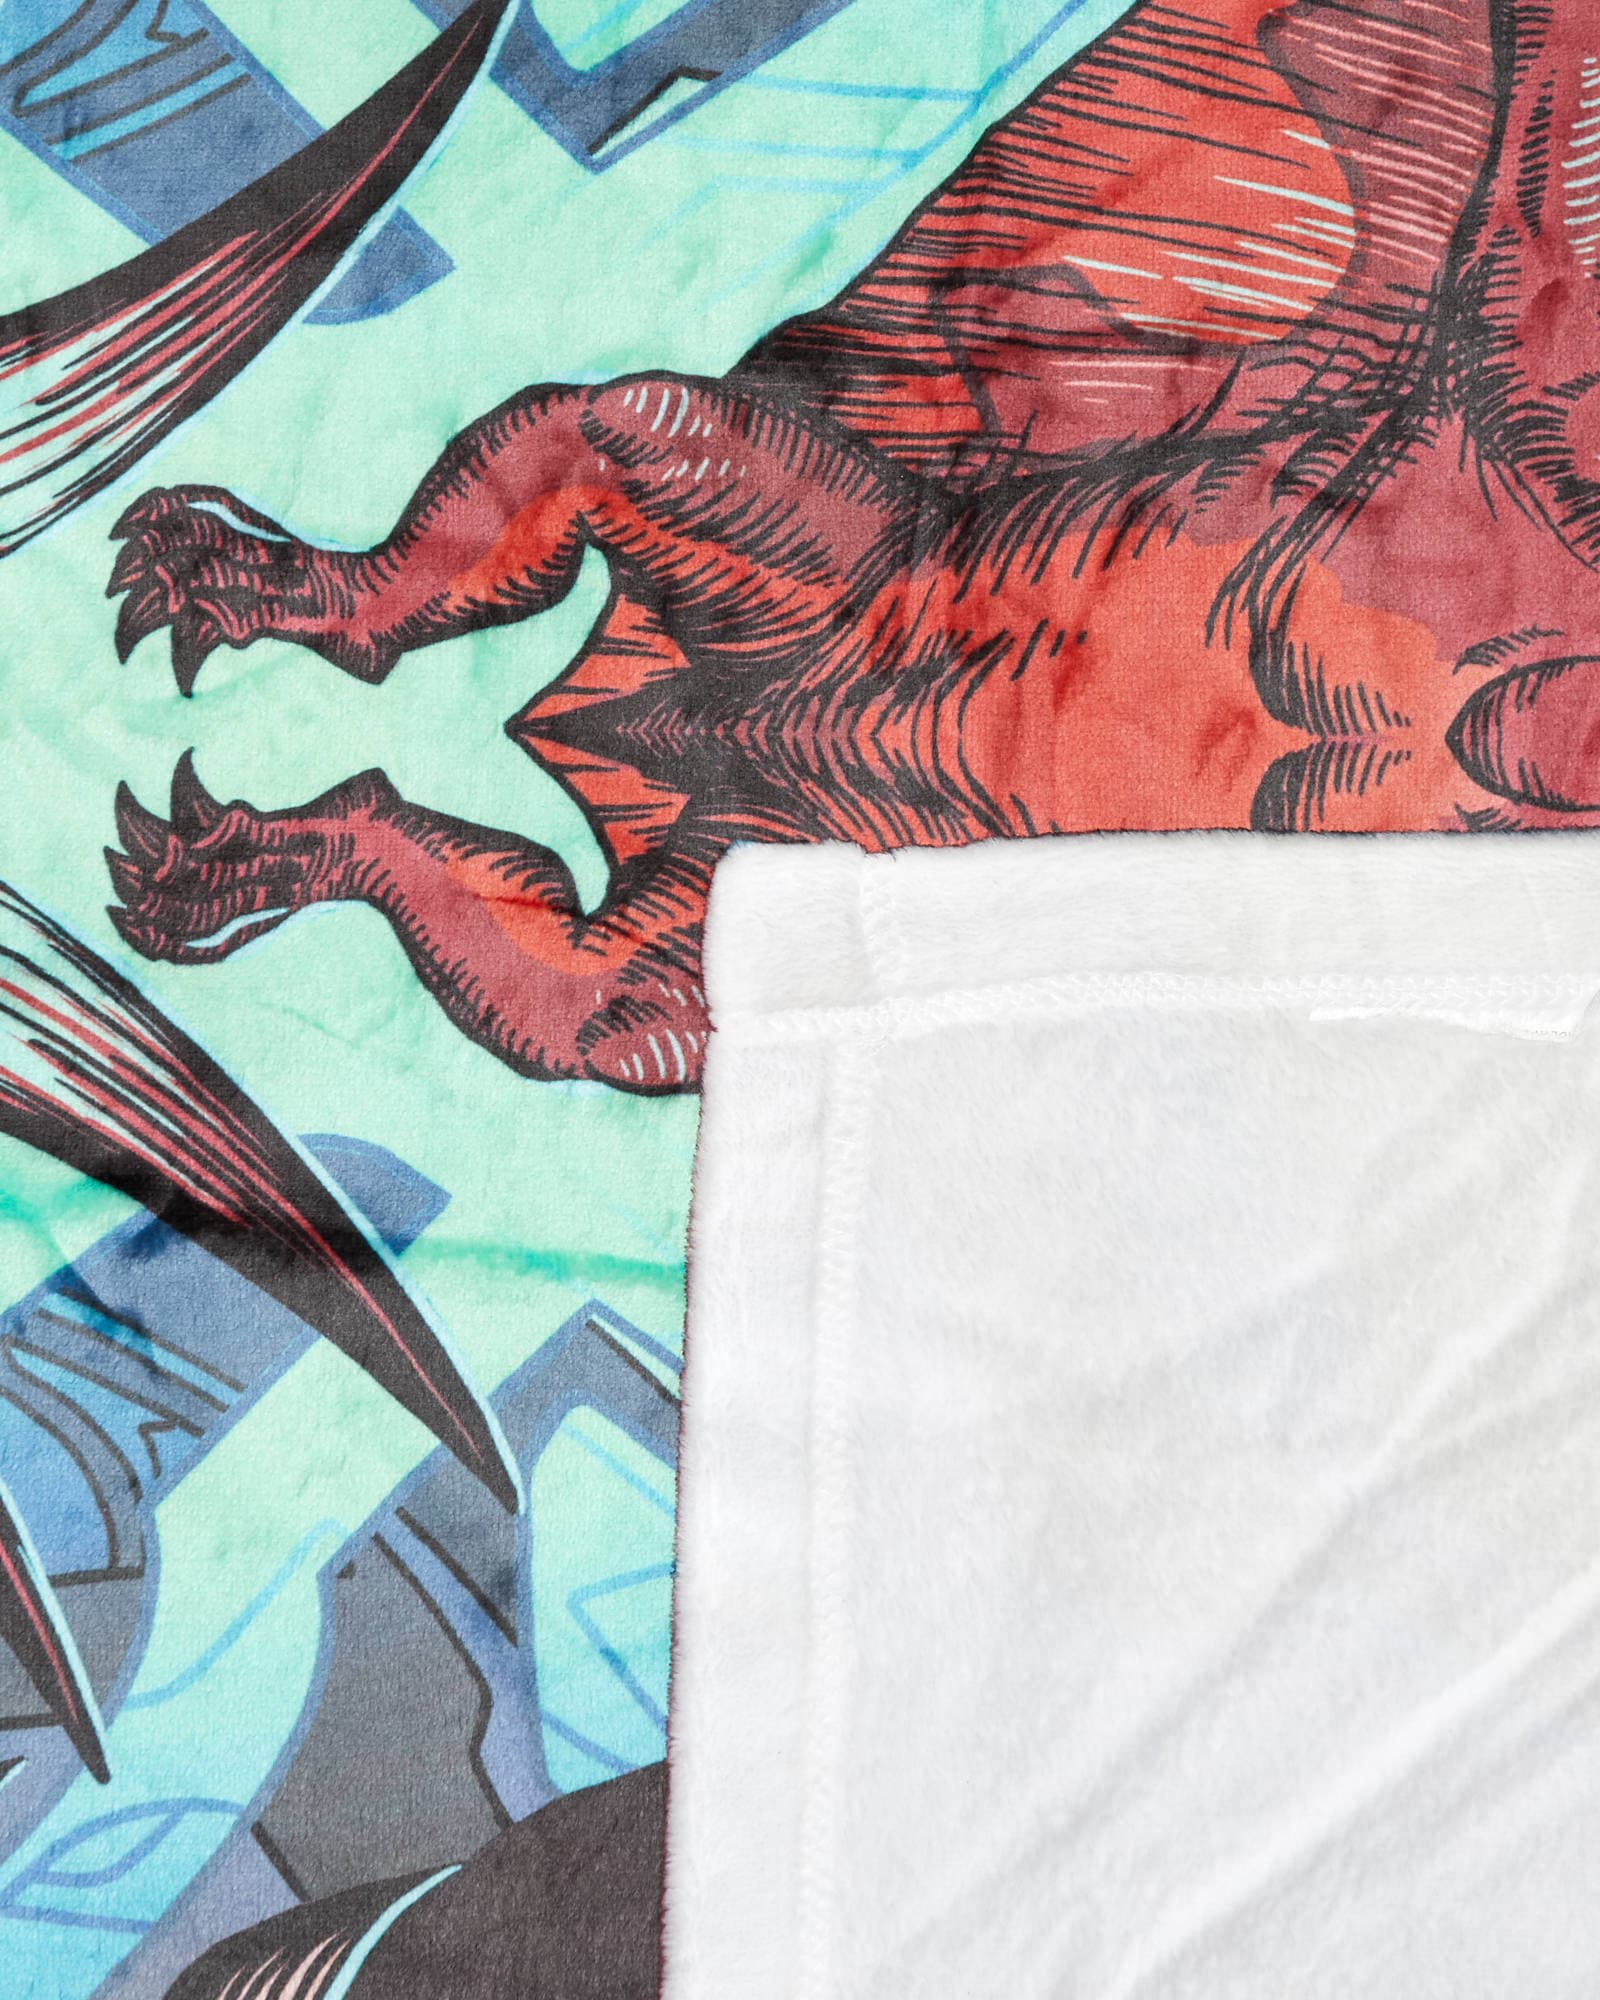 'DinoX' Blanket - Red/Teal/Black